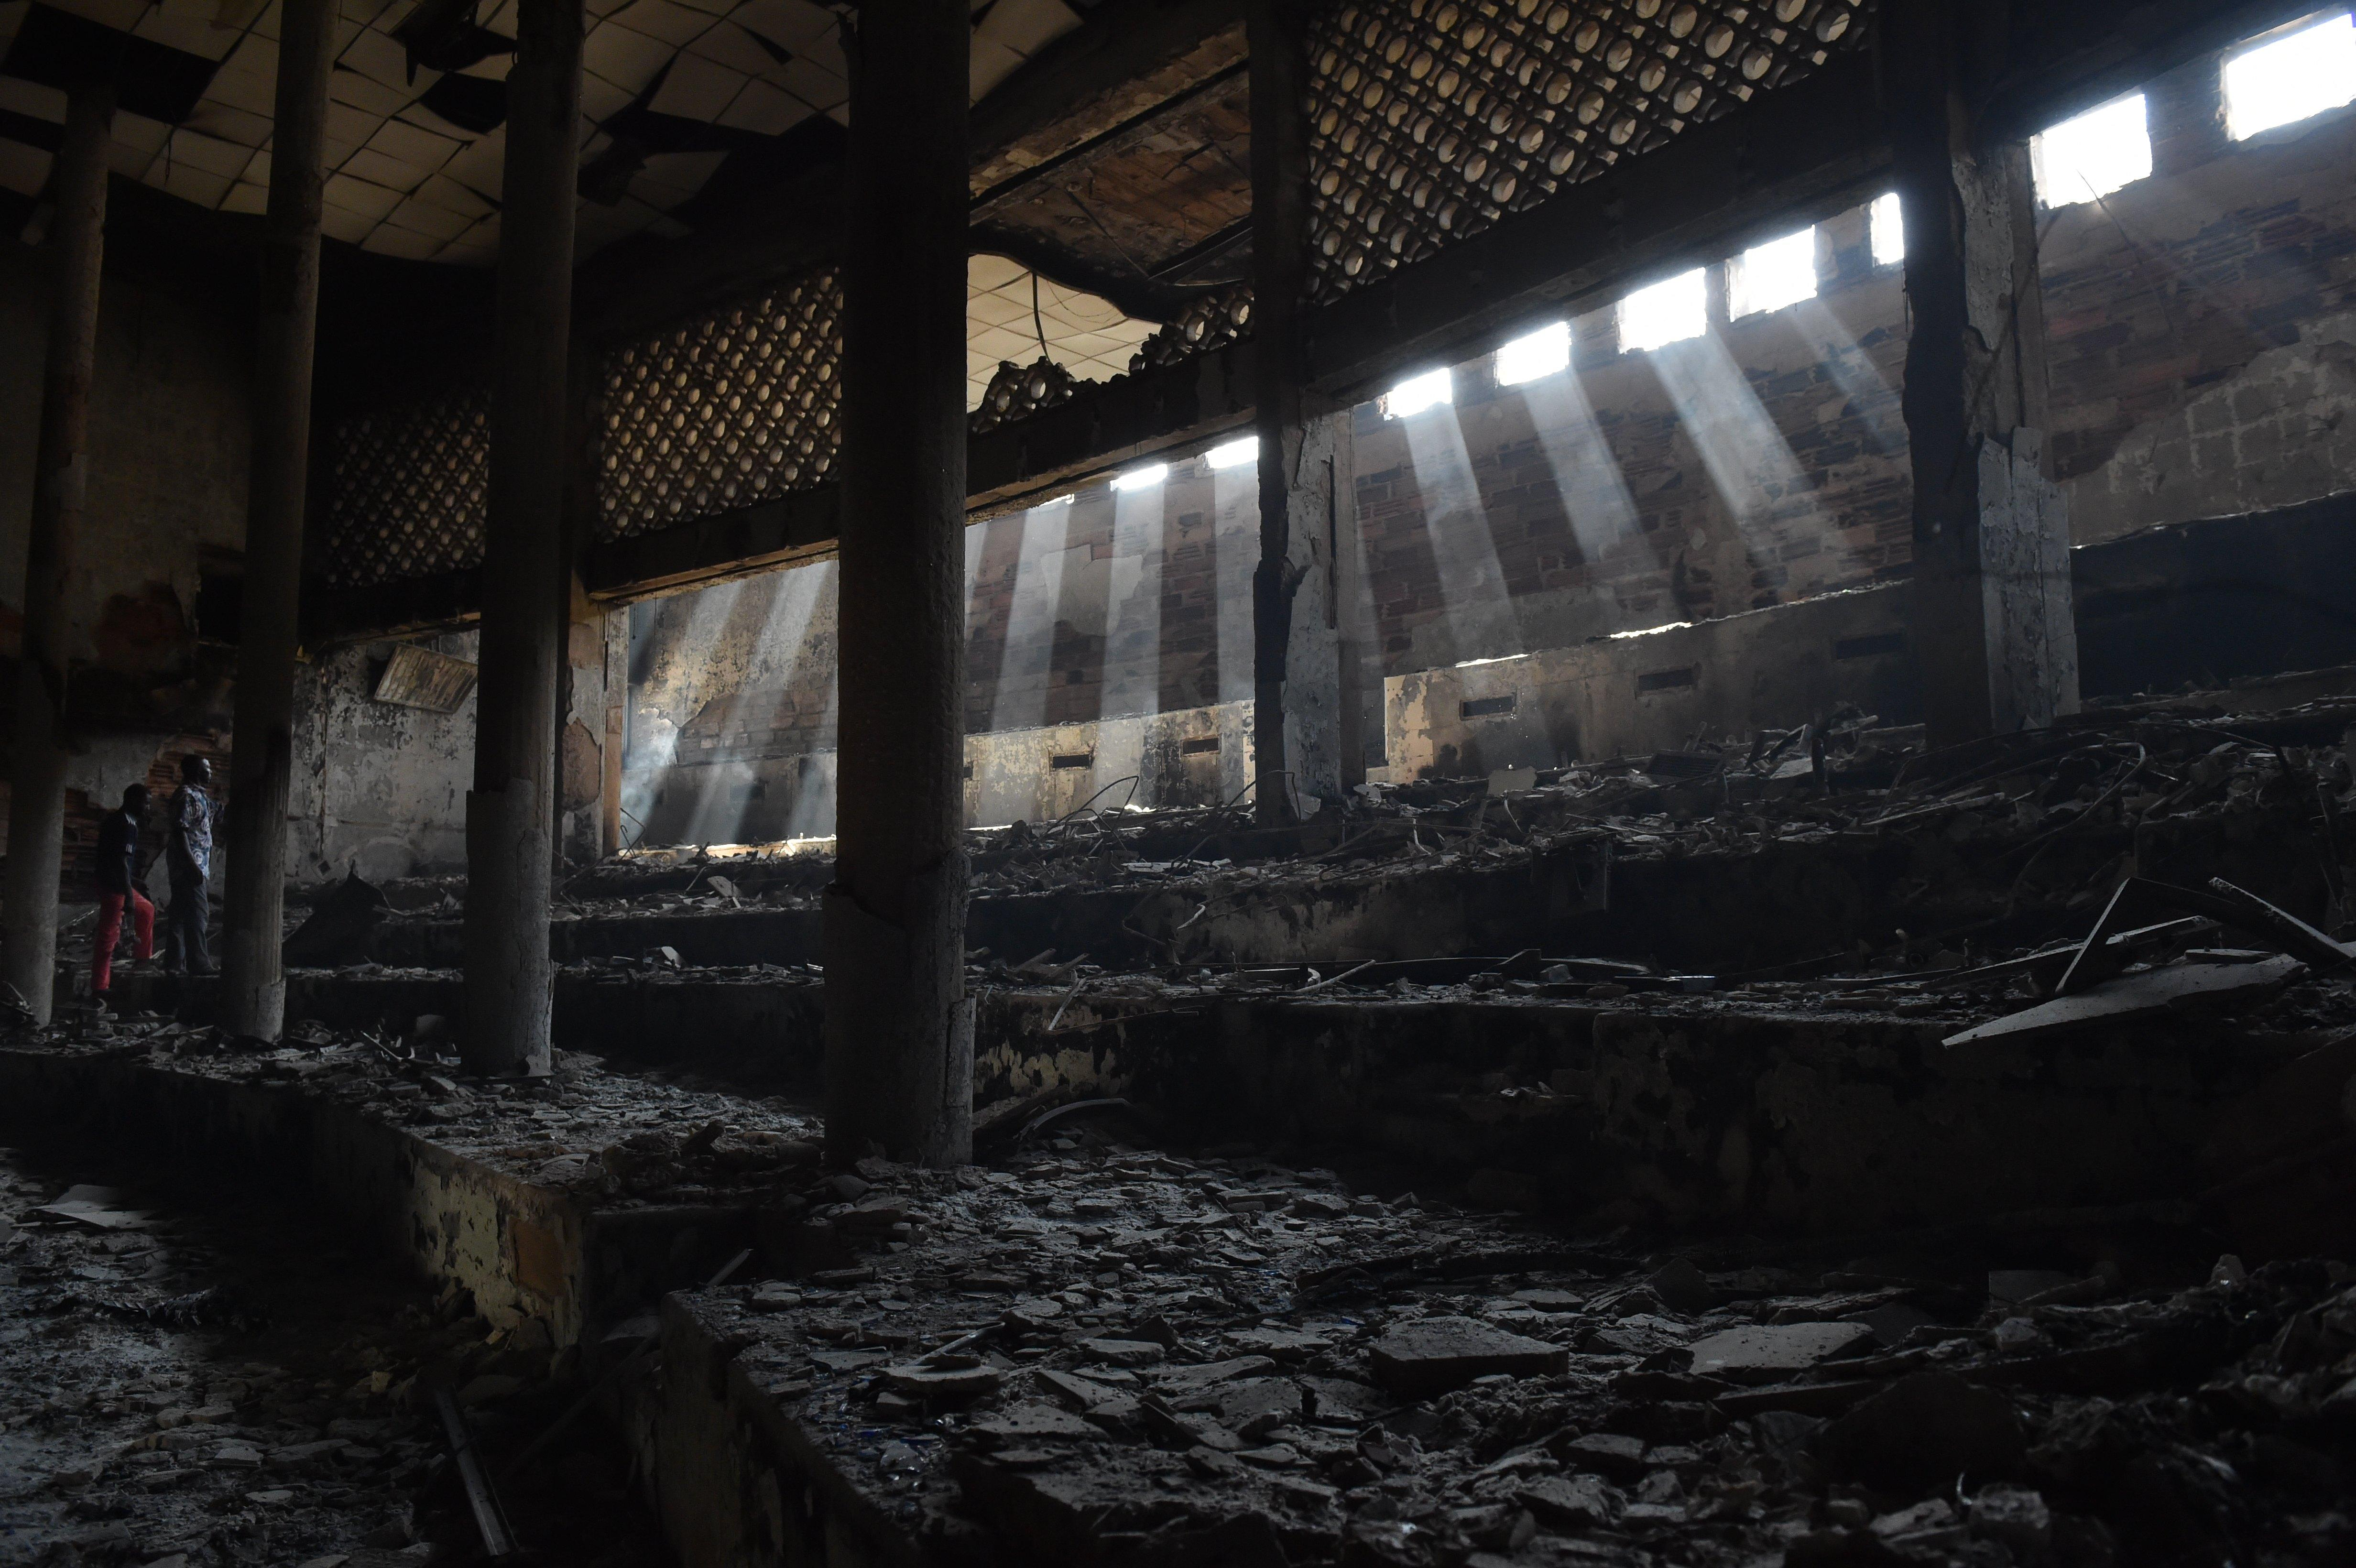 The burnt inside of the parliament in Ouagadougou pictured on October 31, 2014, a day after it was stormed by protesters (AFP Photo/Issouf Sanogo)